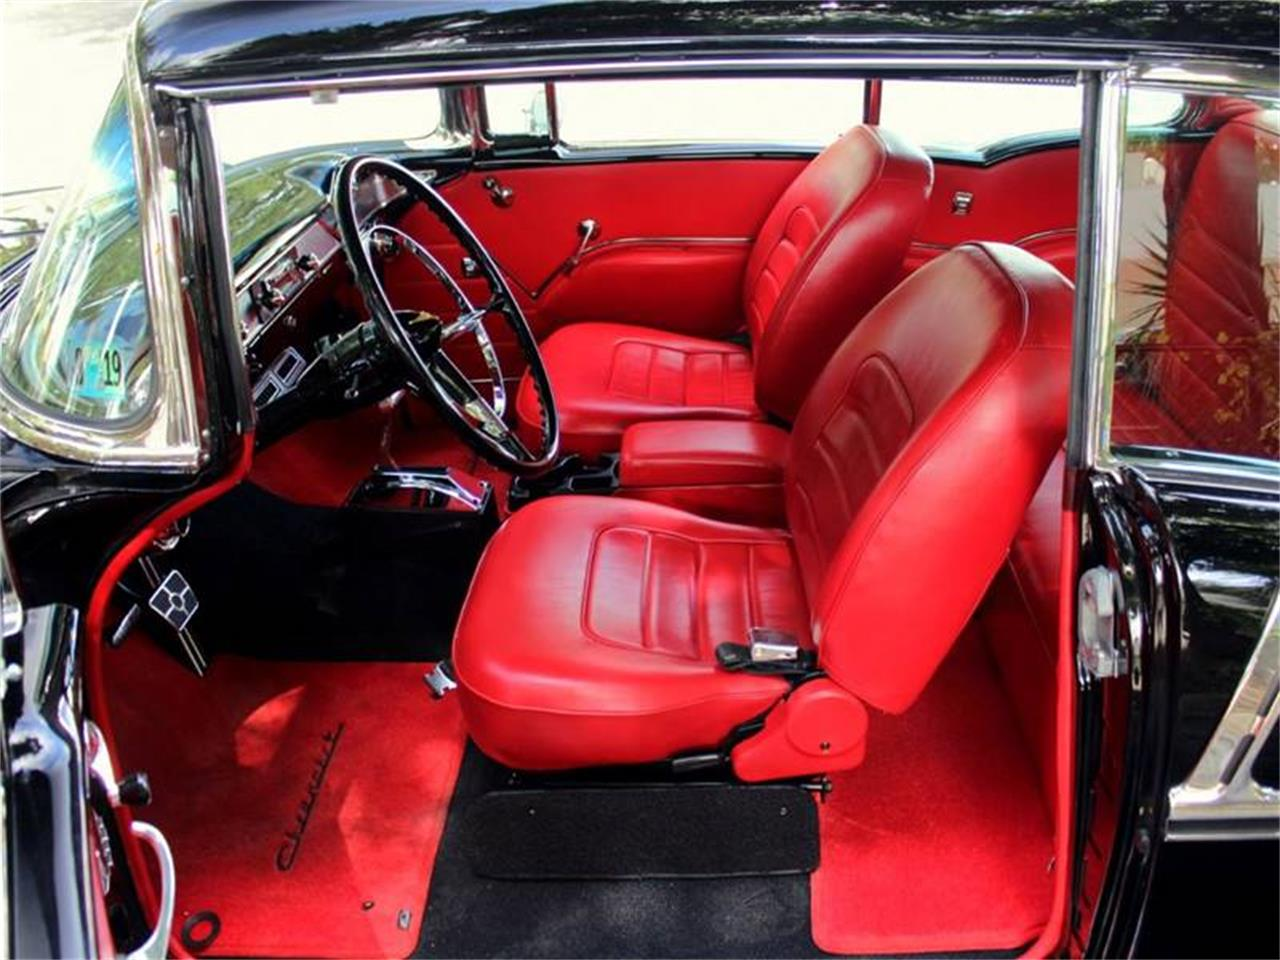 Large Picture of Classic '55 Chevrolet Bel Air - $59,900.00 Offered by PJ's Auto World - QRFG